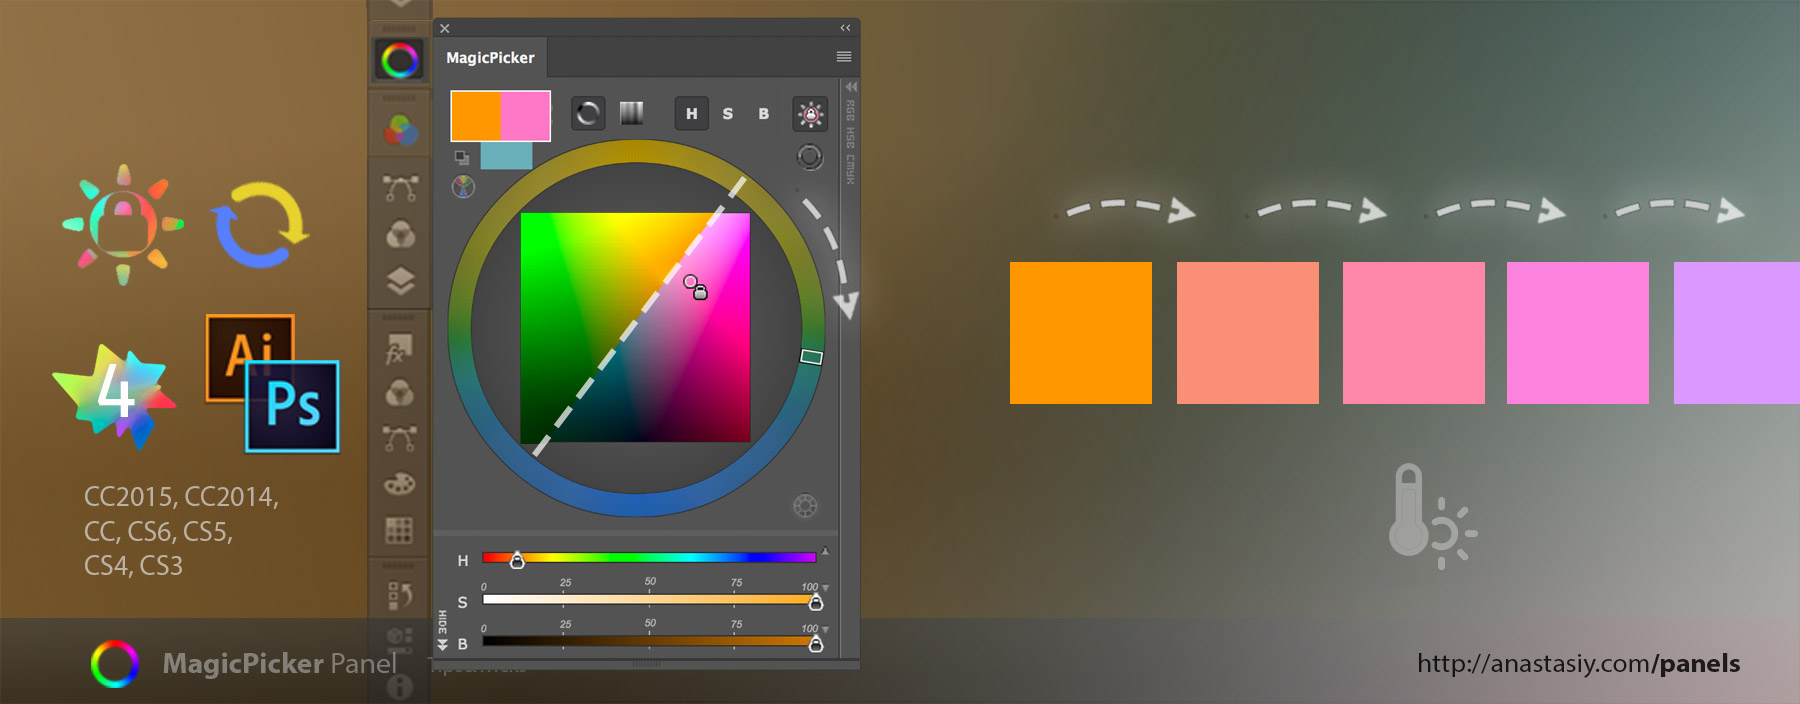 Change color temperature while keeping color's brightness